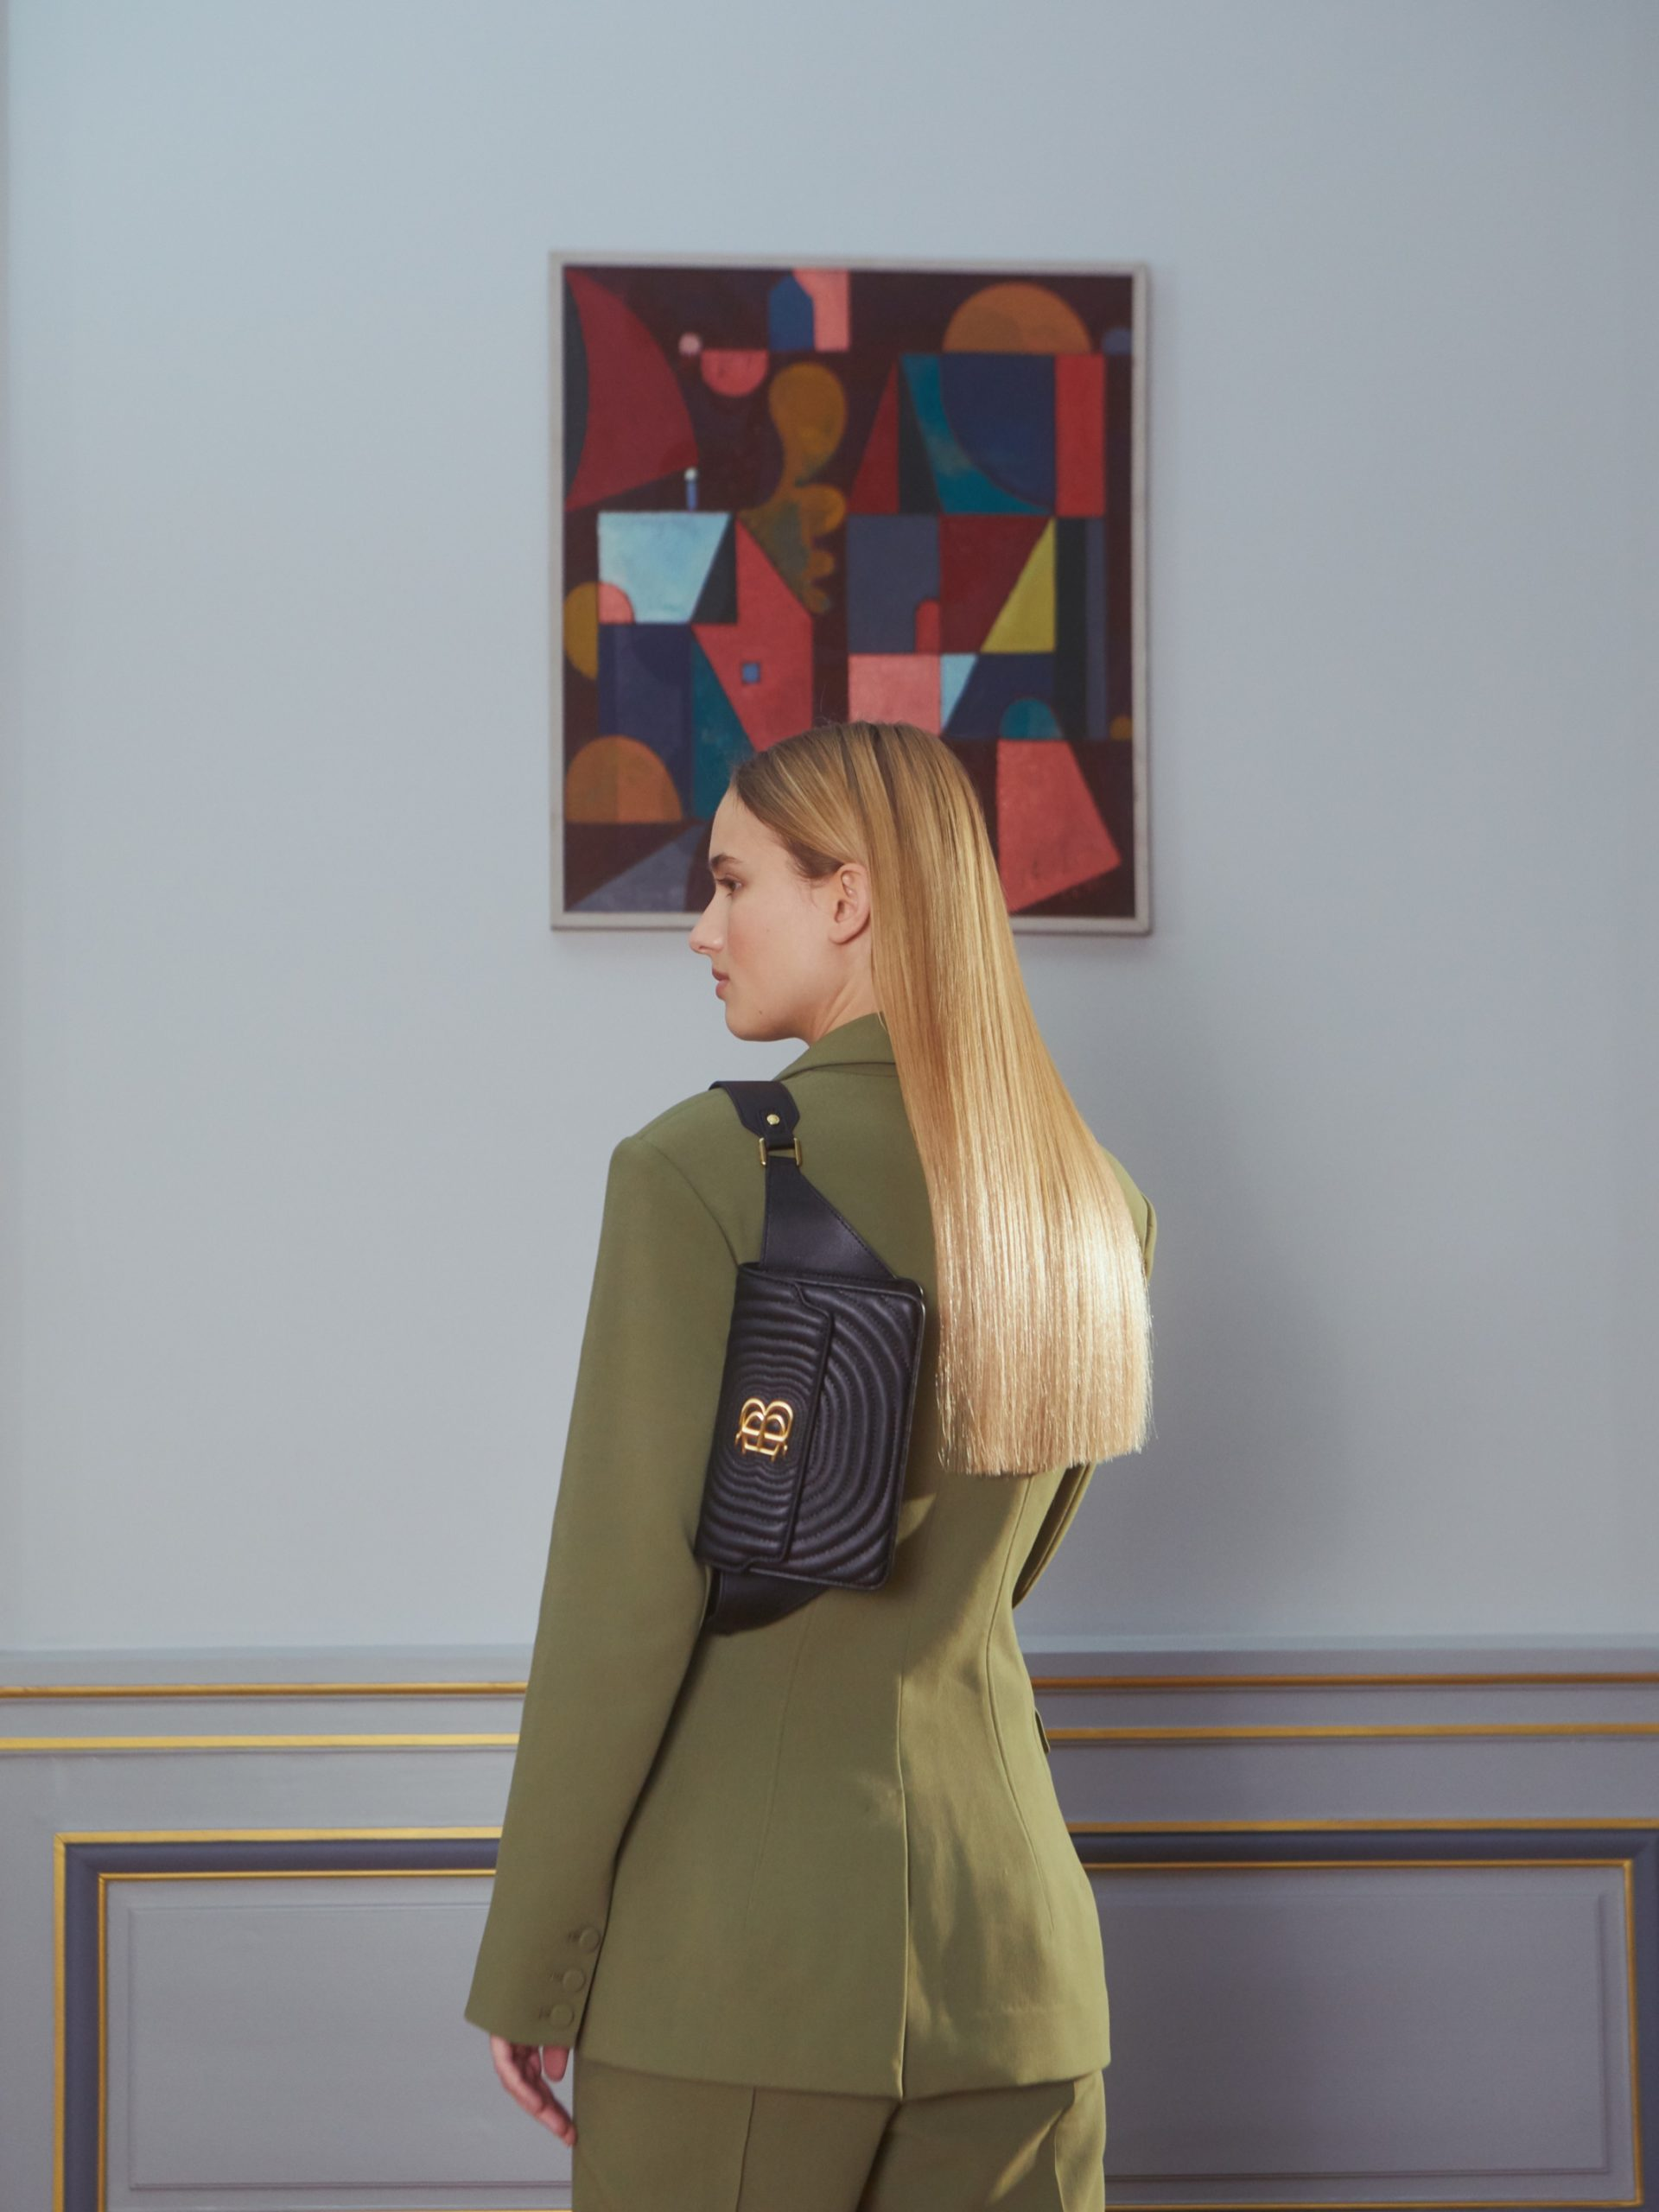 Bonia Spring 2021: Objects of Desire